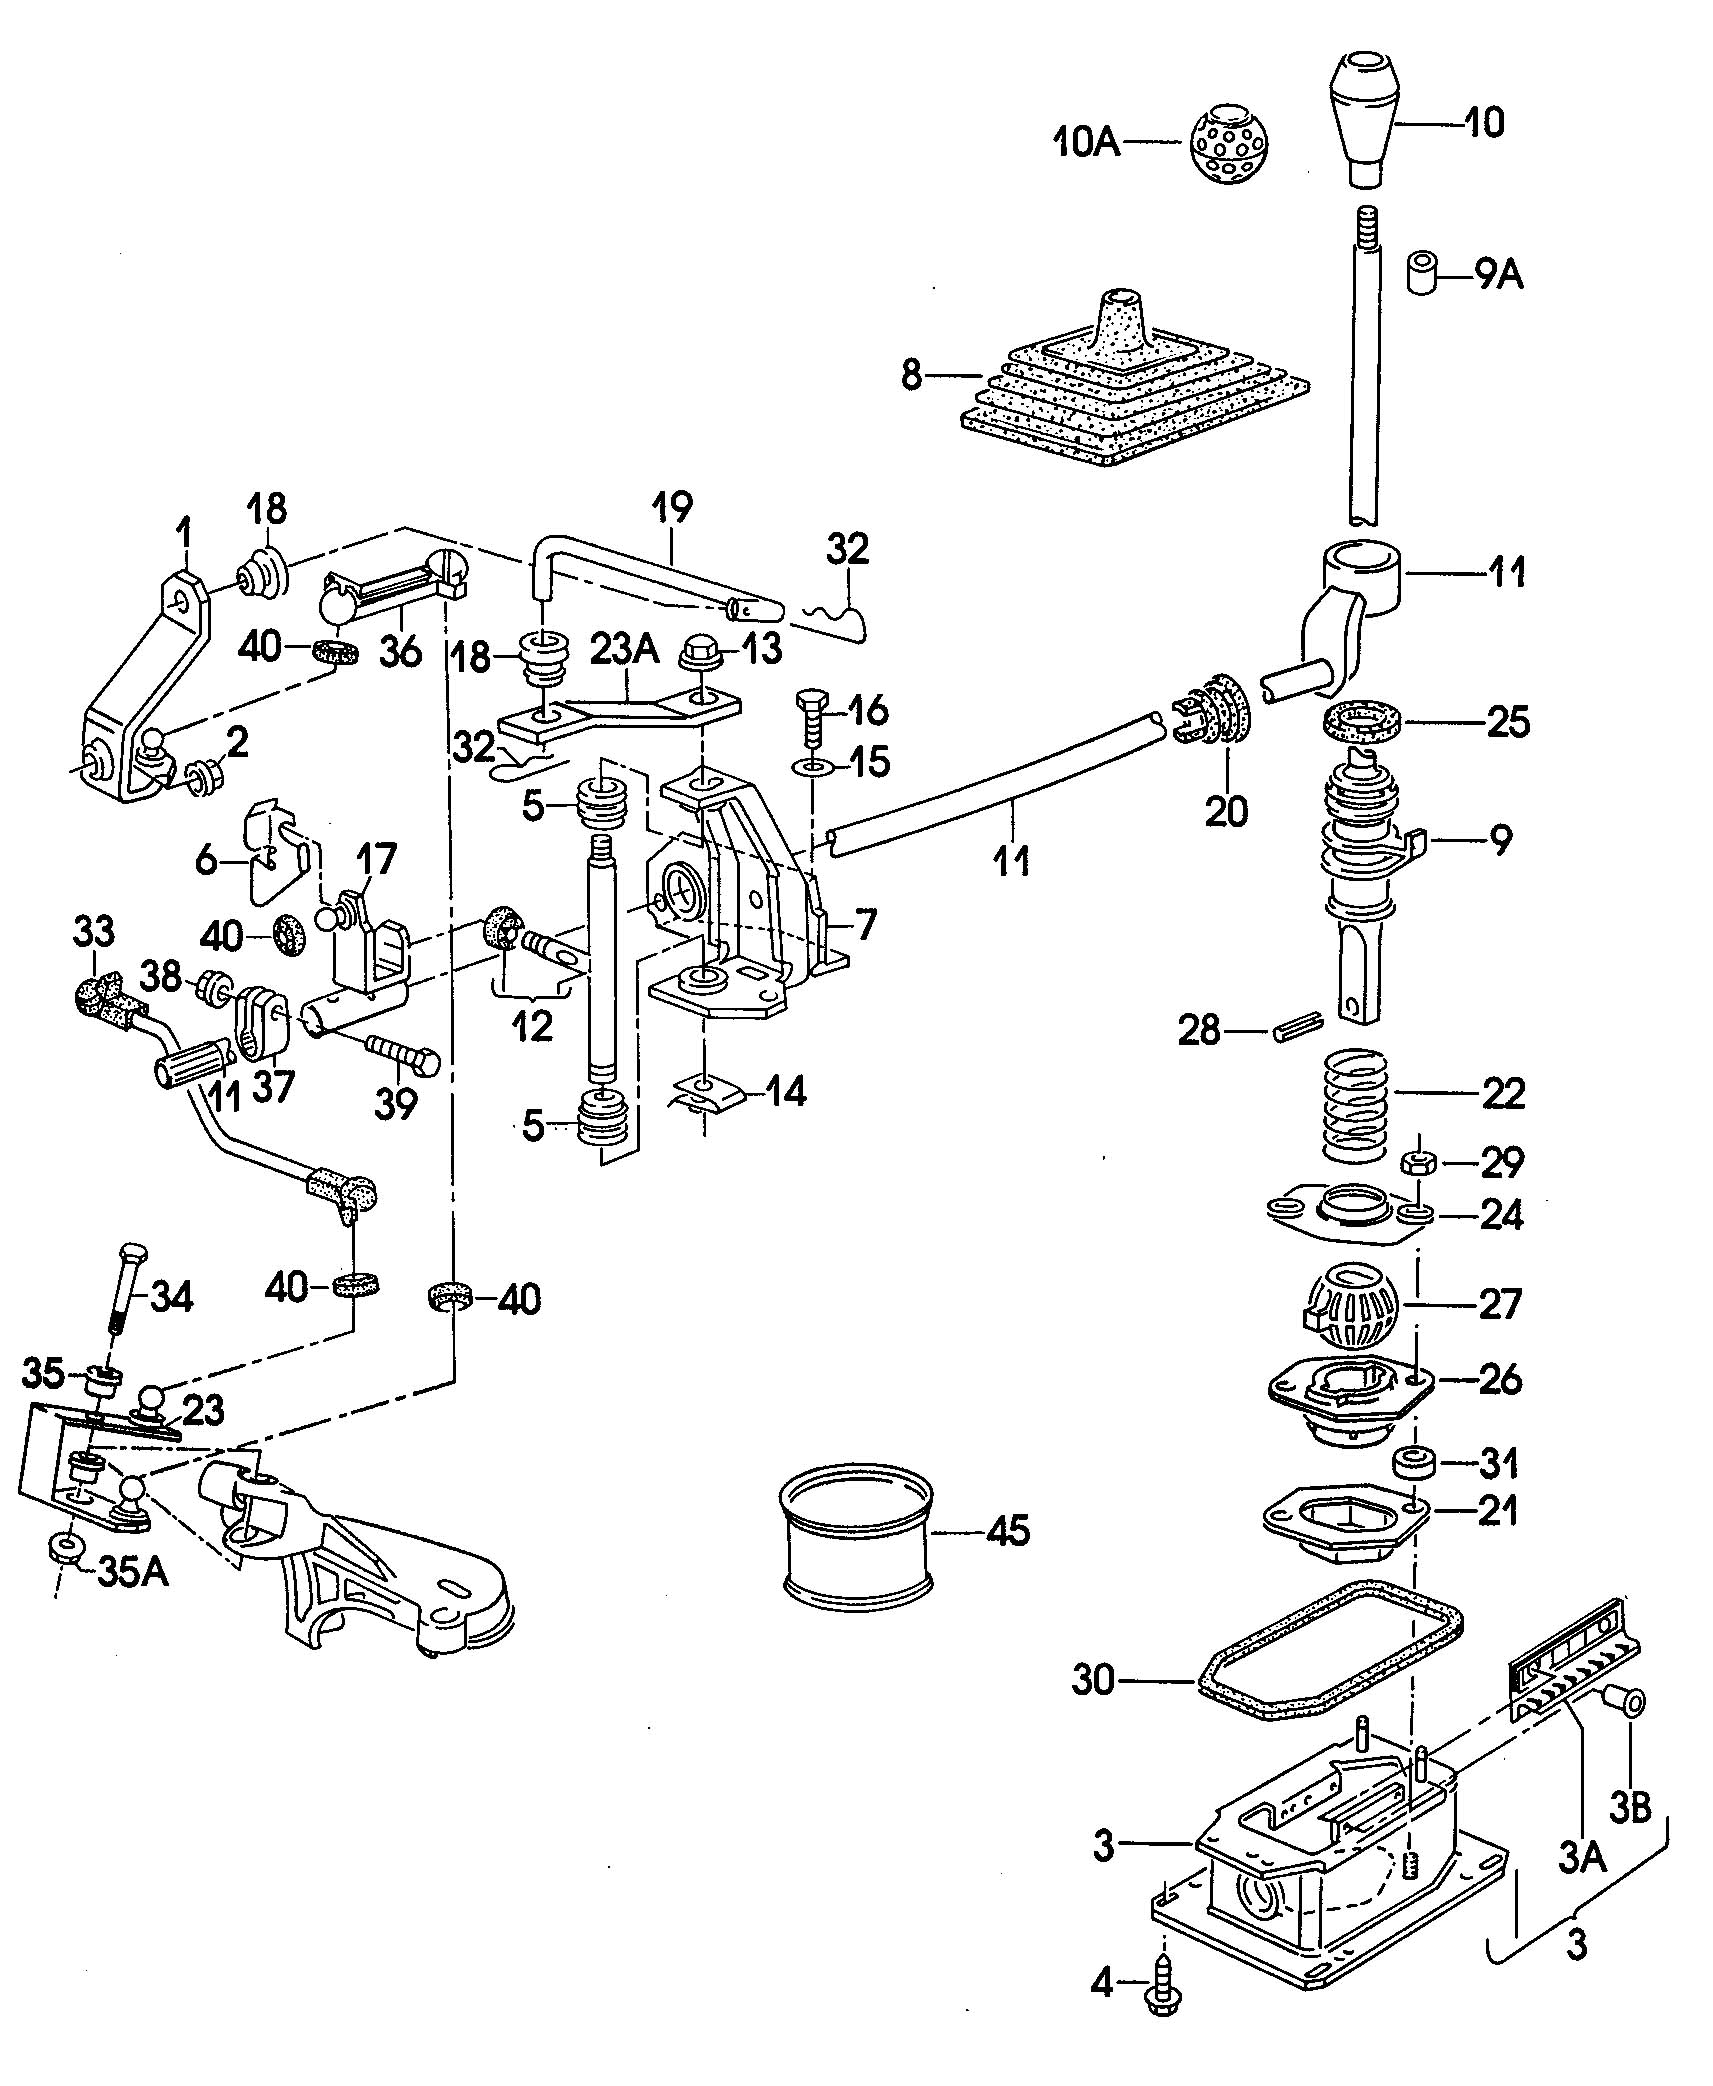 Volkswagen (VW) Shift mechanism for manual transmission engine